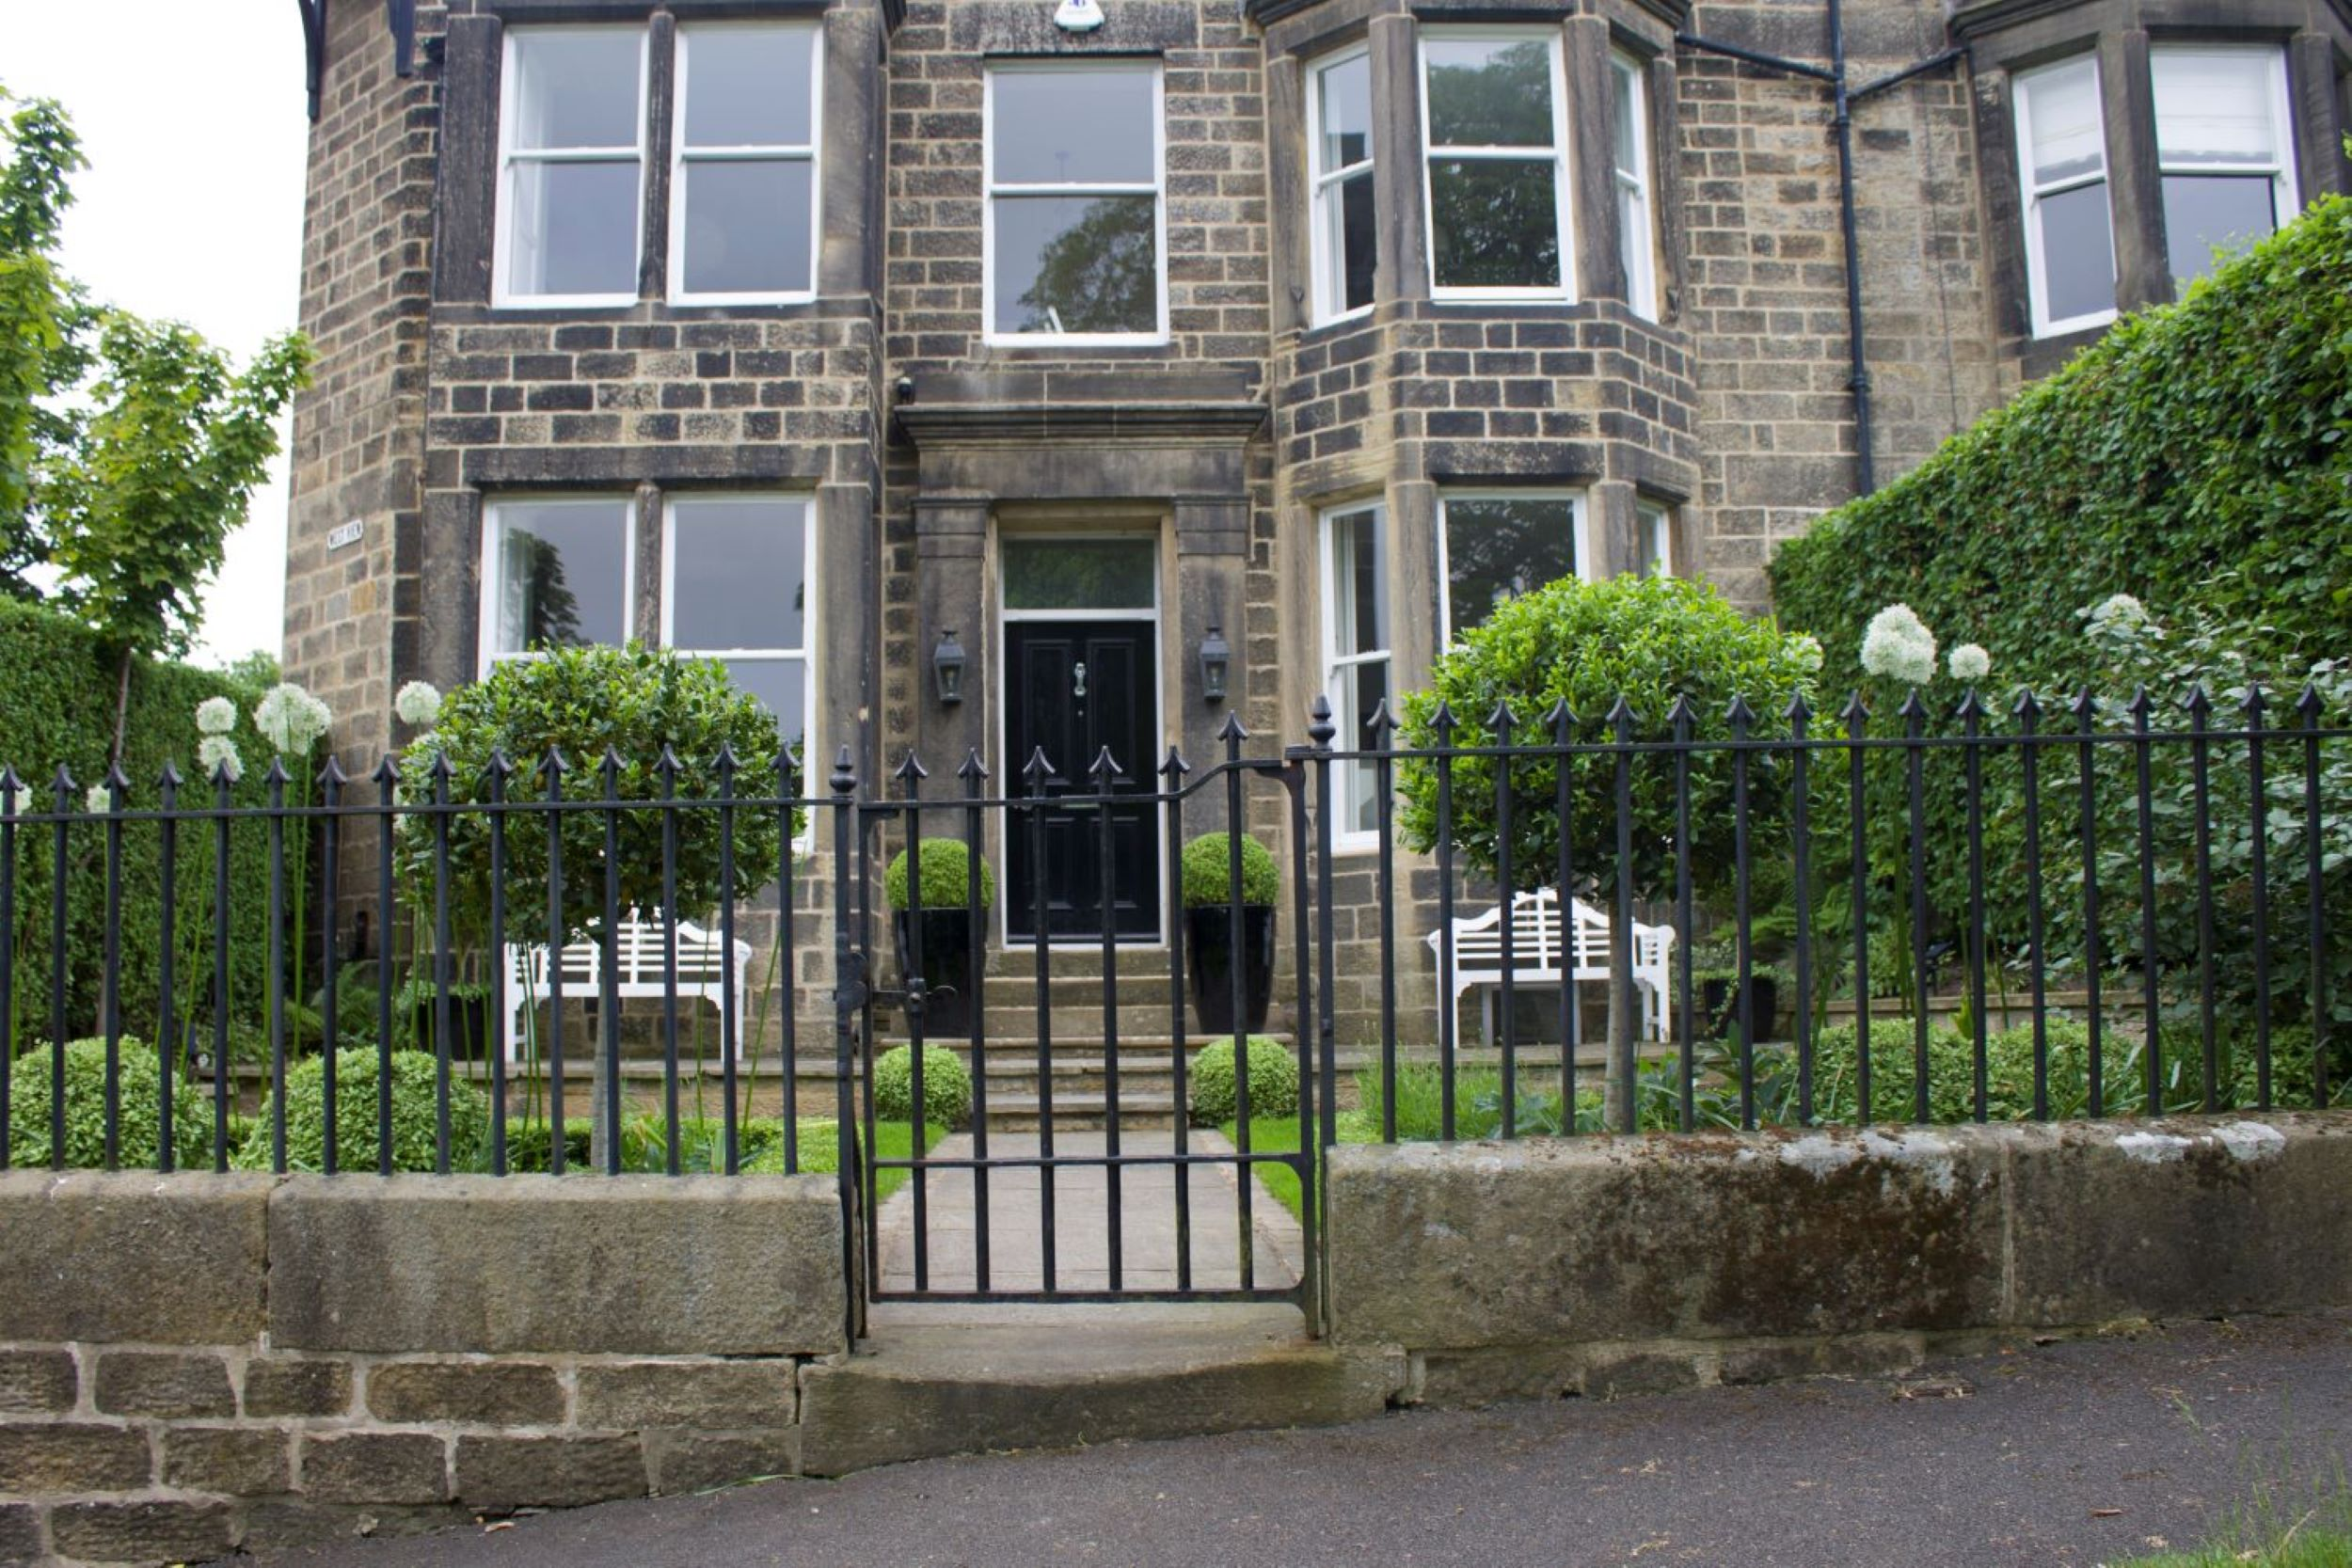 A formal front garden to a period town house, Ilkley.